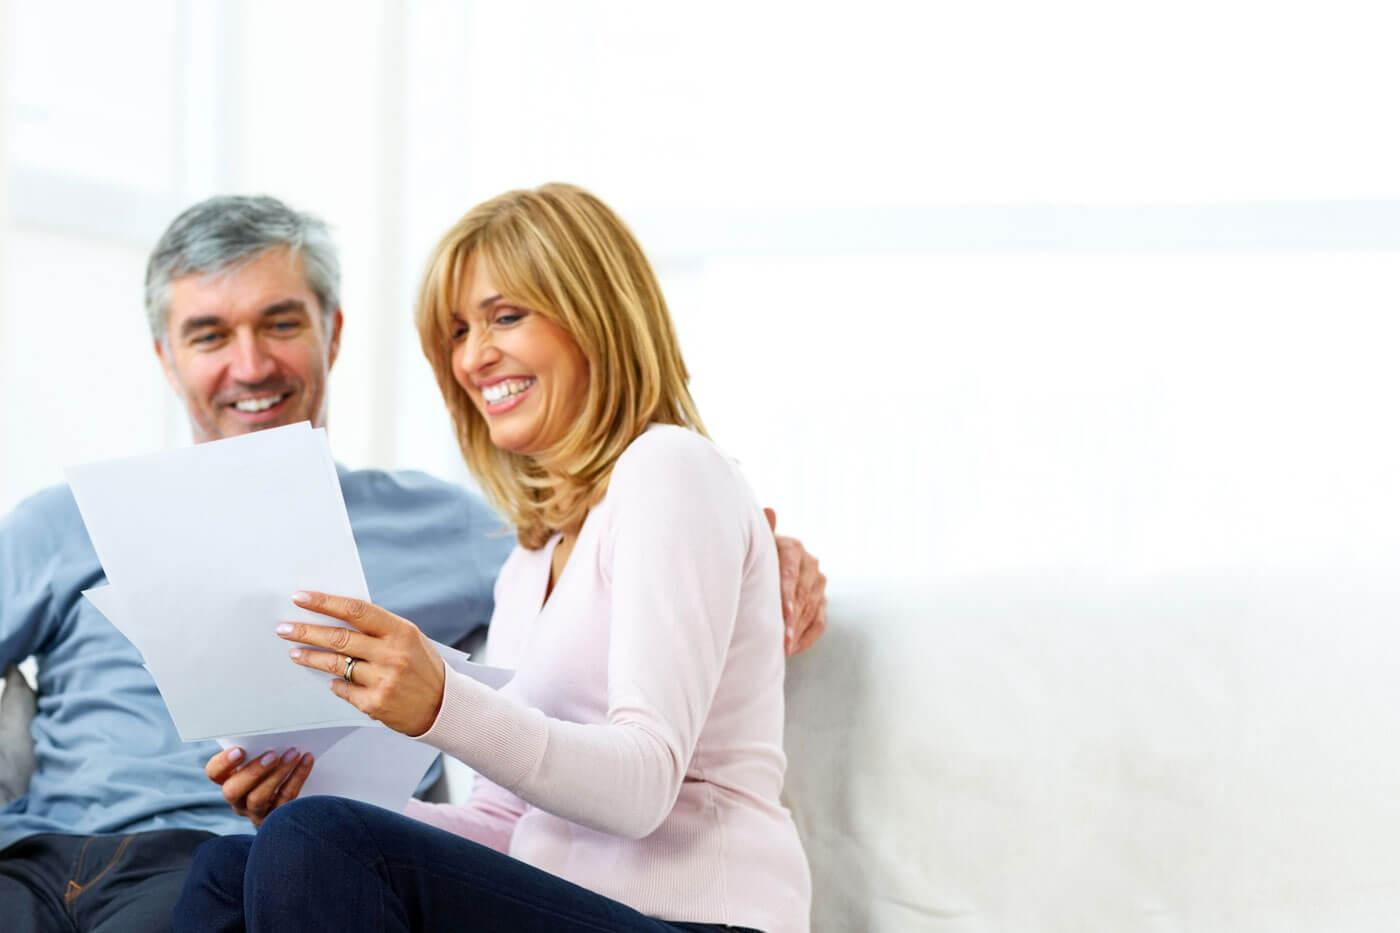 An older man and woman sitting down and smiling at their electricity bill